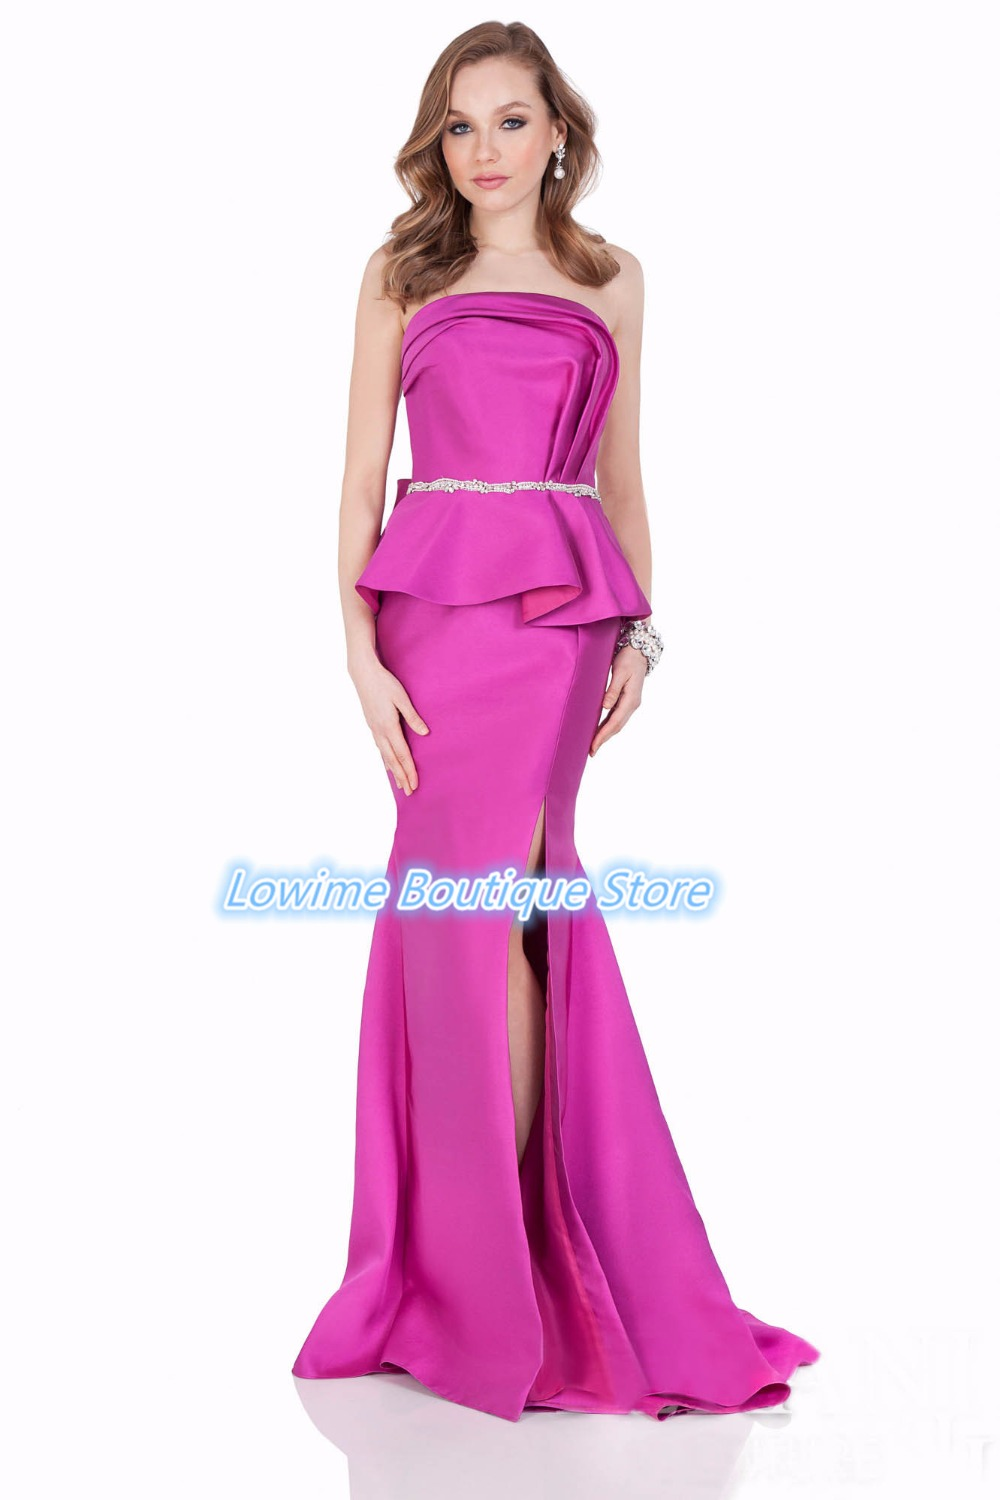 Fuchsia Strapless Dress Promotion-Shop for Promotional Fuchsia ...